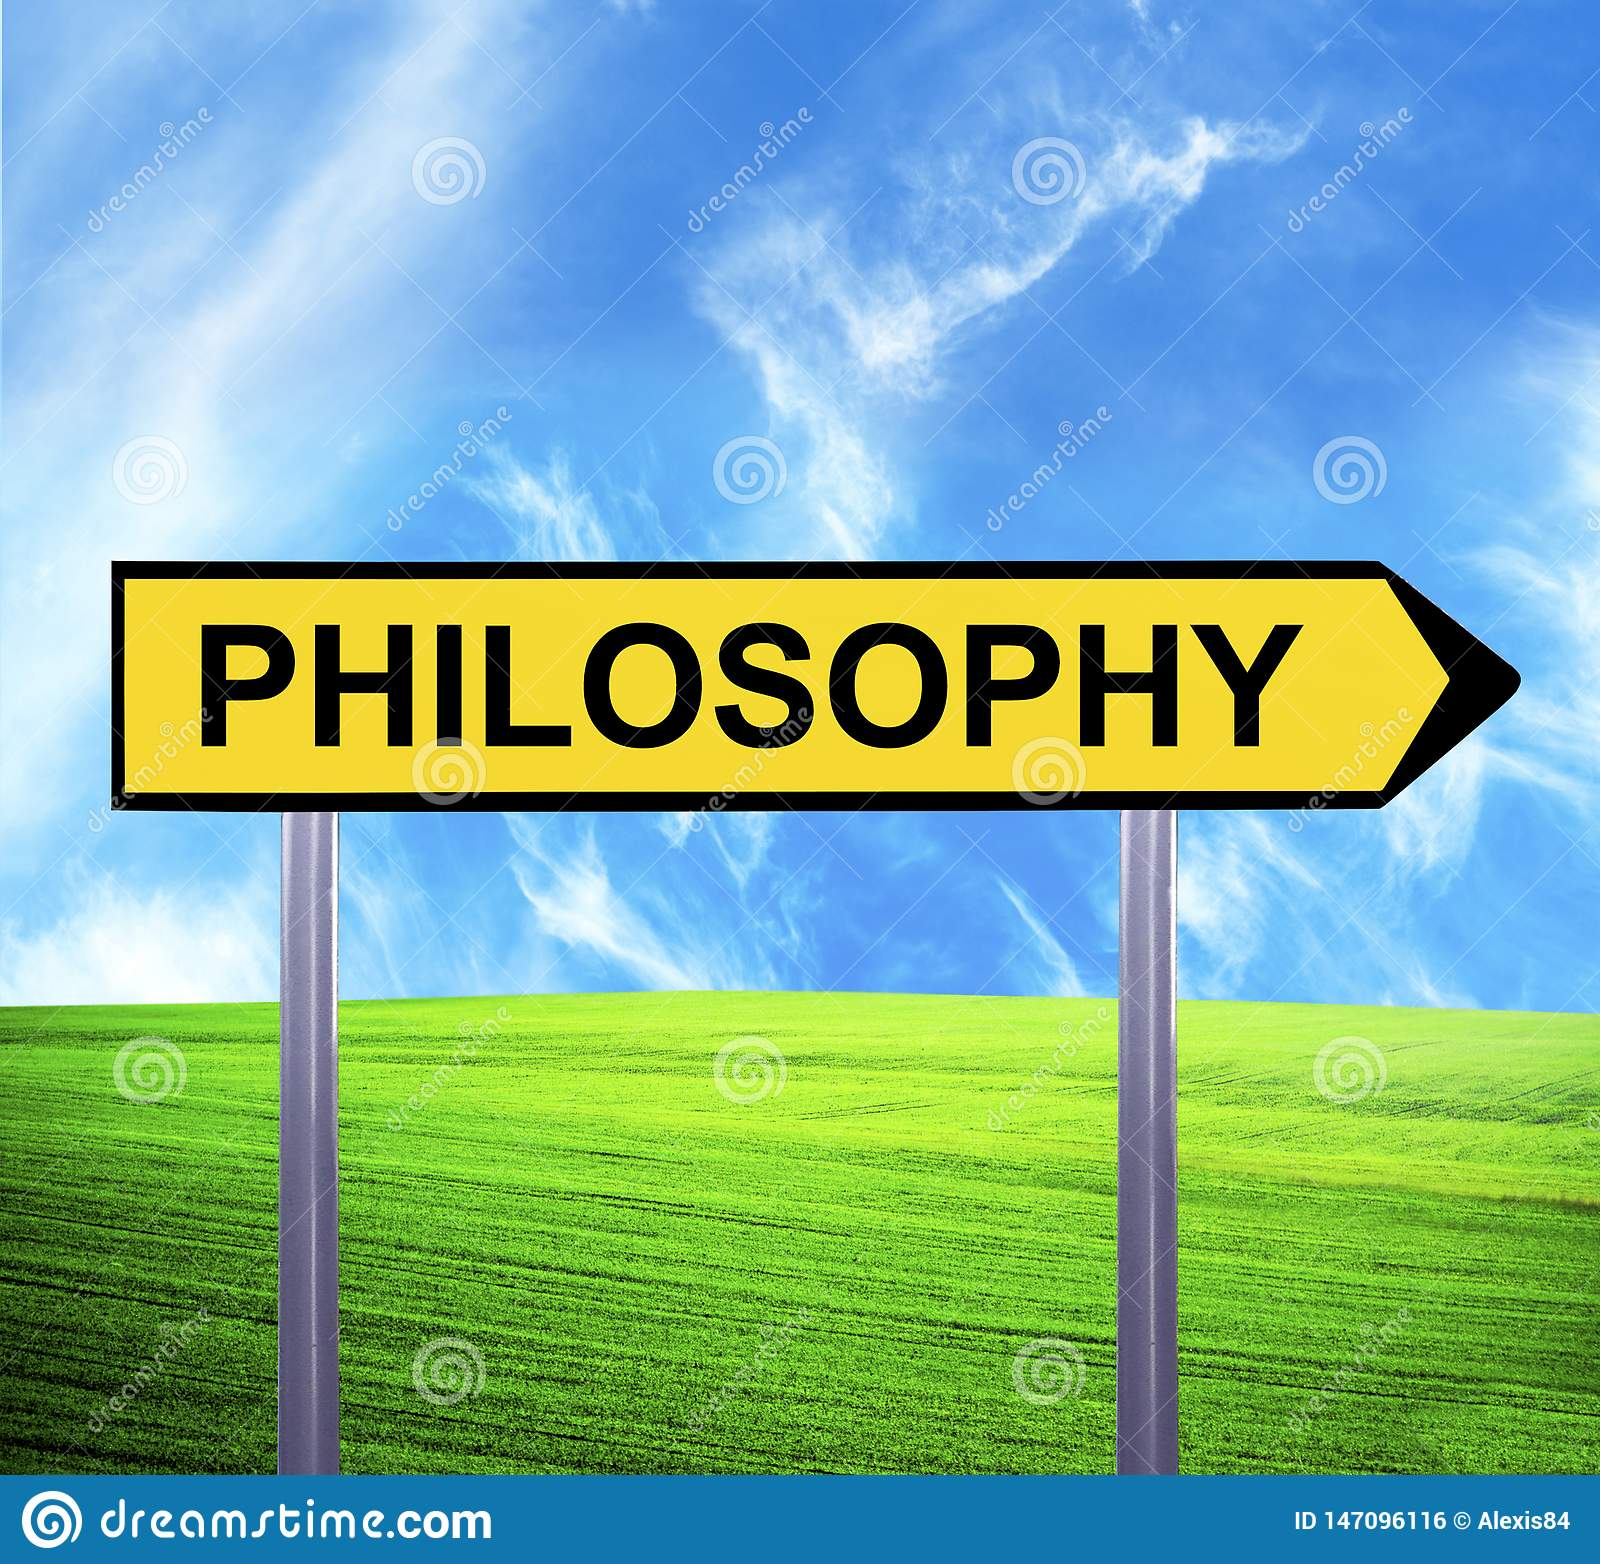 Conceptual arrow sign against beautiful landscape with text - PHILOSOPHY